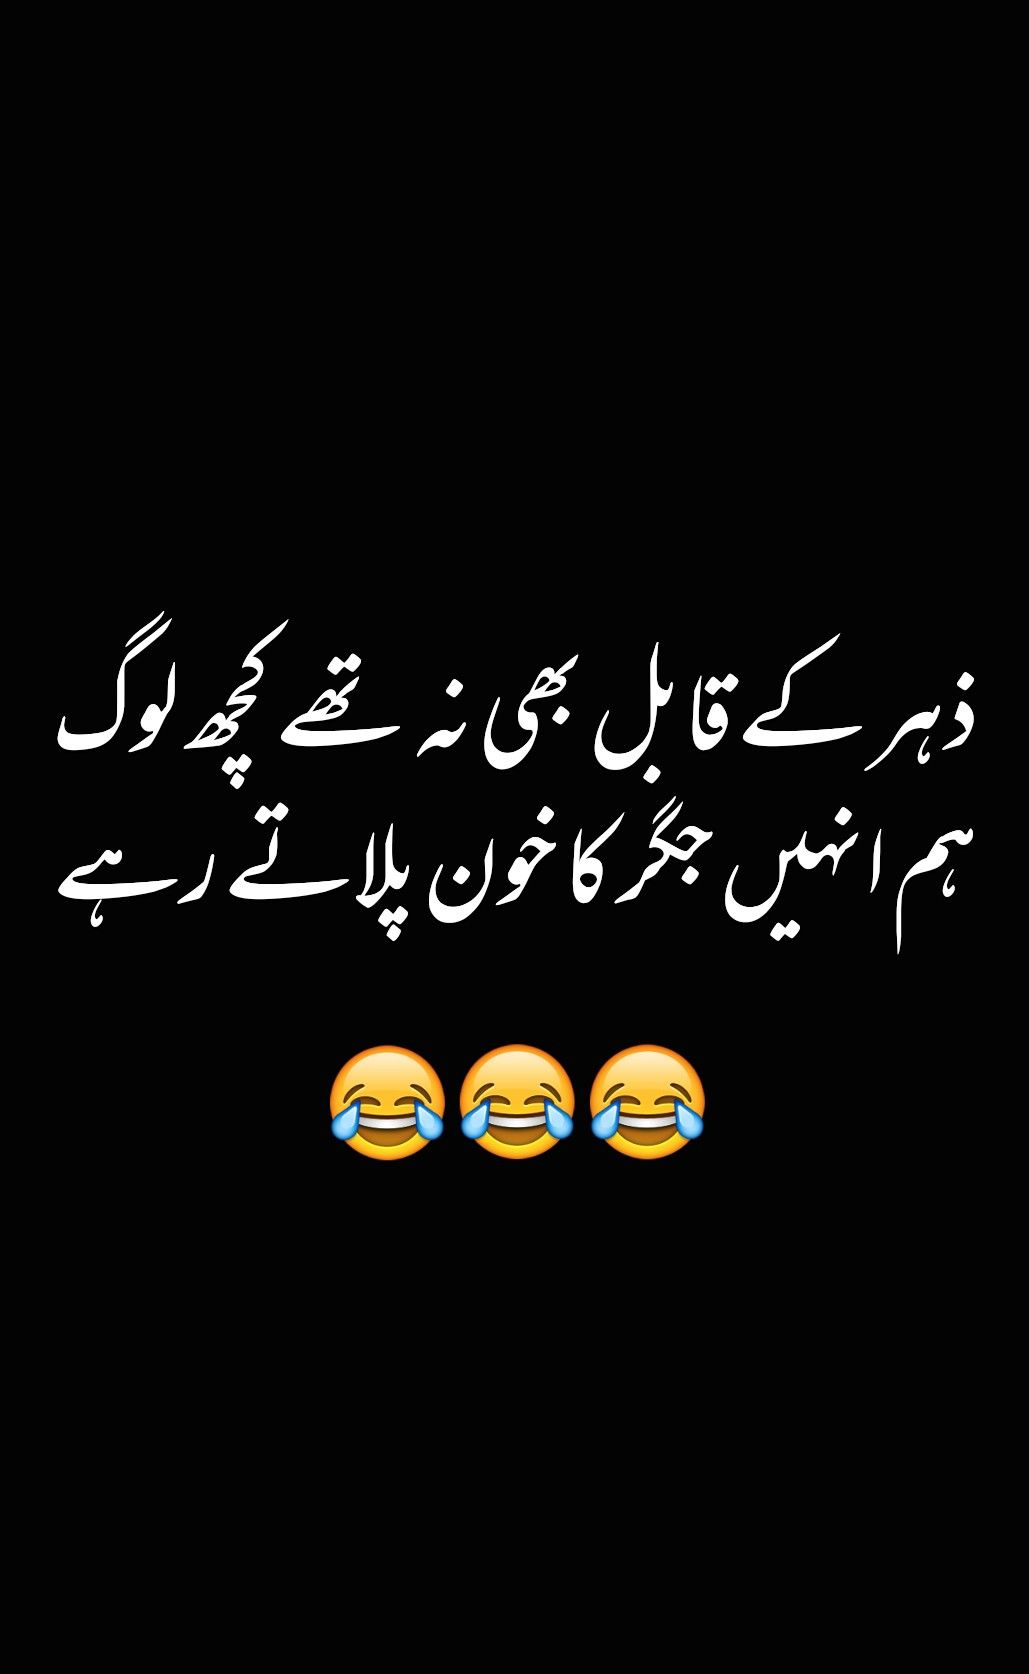 Pin By Sunny Shaikh On Funny Quote Best Friend Quotes Funny Funny Quotes Jokes Quotes